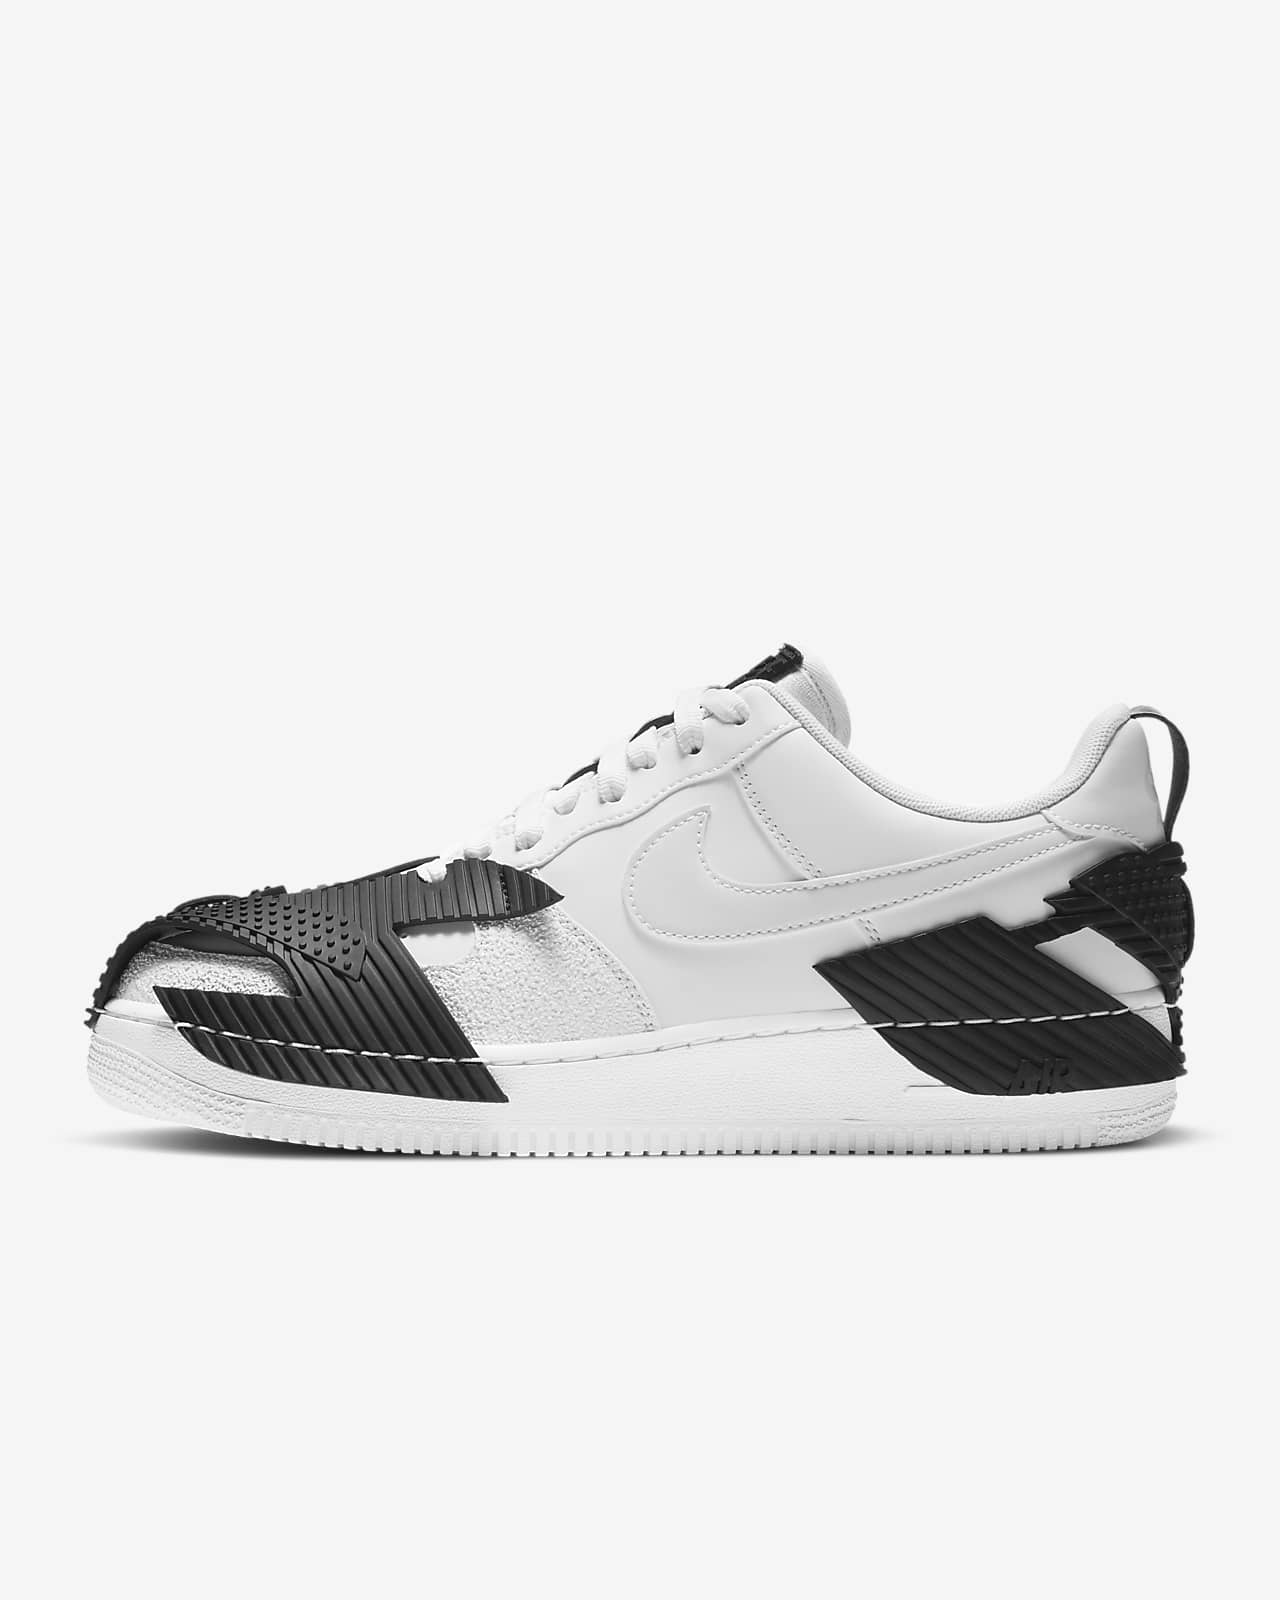 Chaussure Nike Air Force 1 NDESTRUKT pour Homme